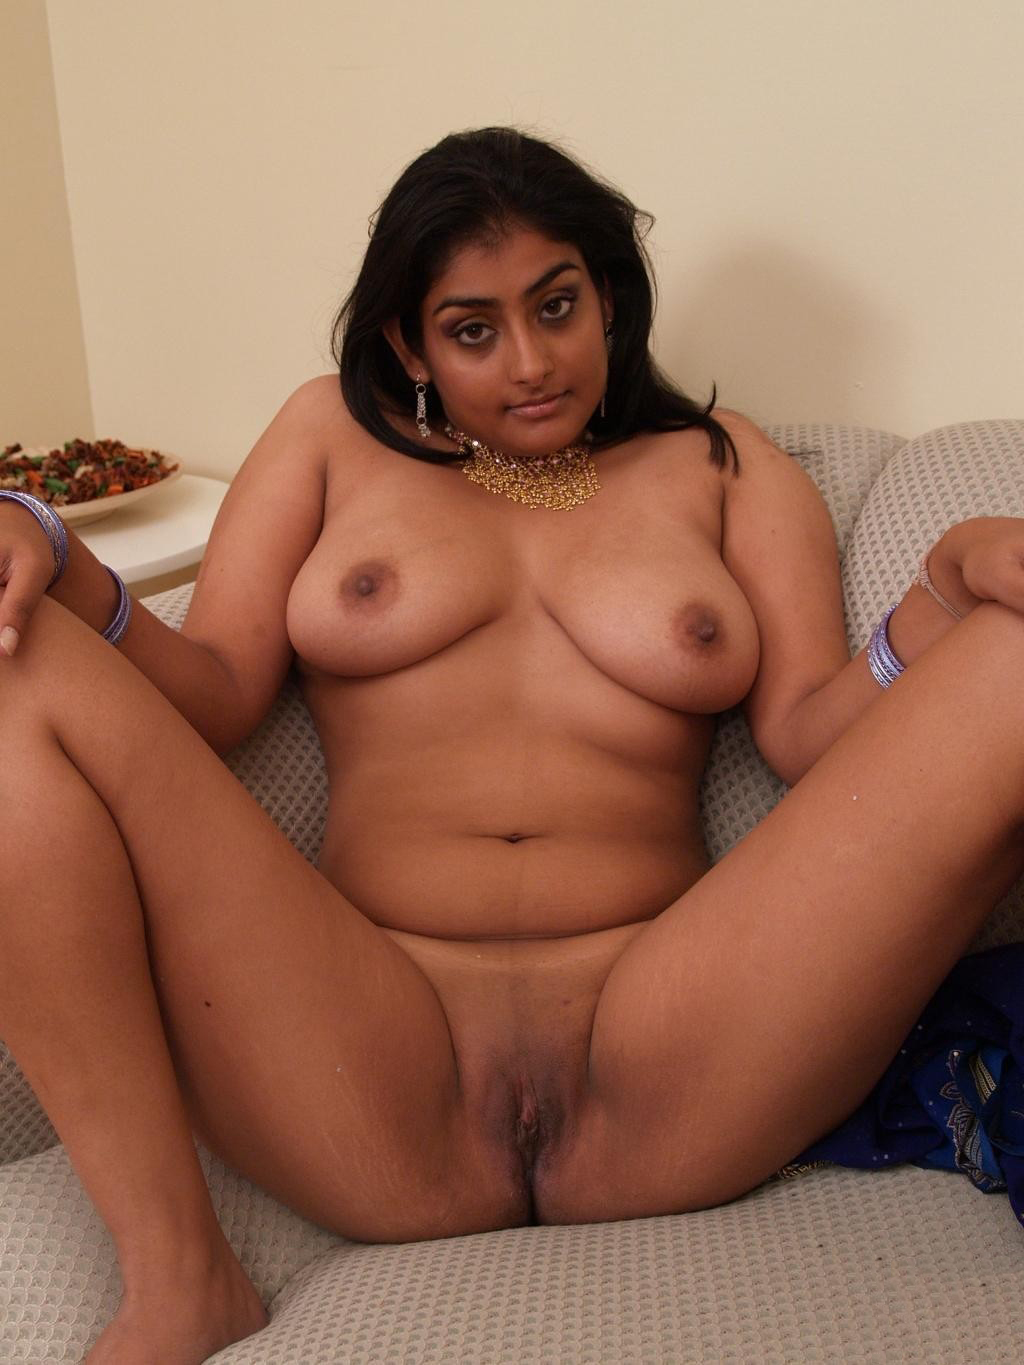 Indian woman neked pic nackt scenes